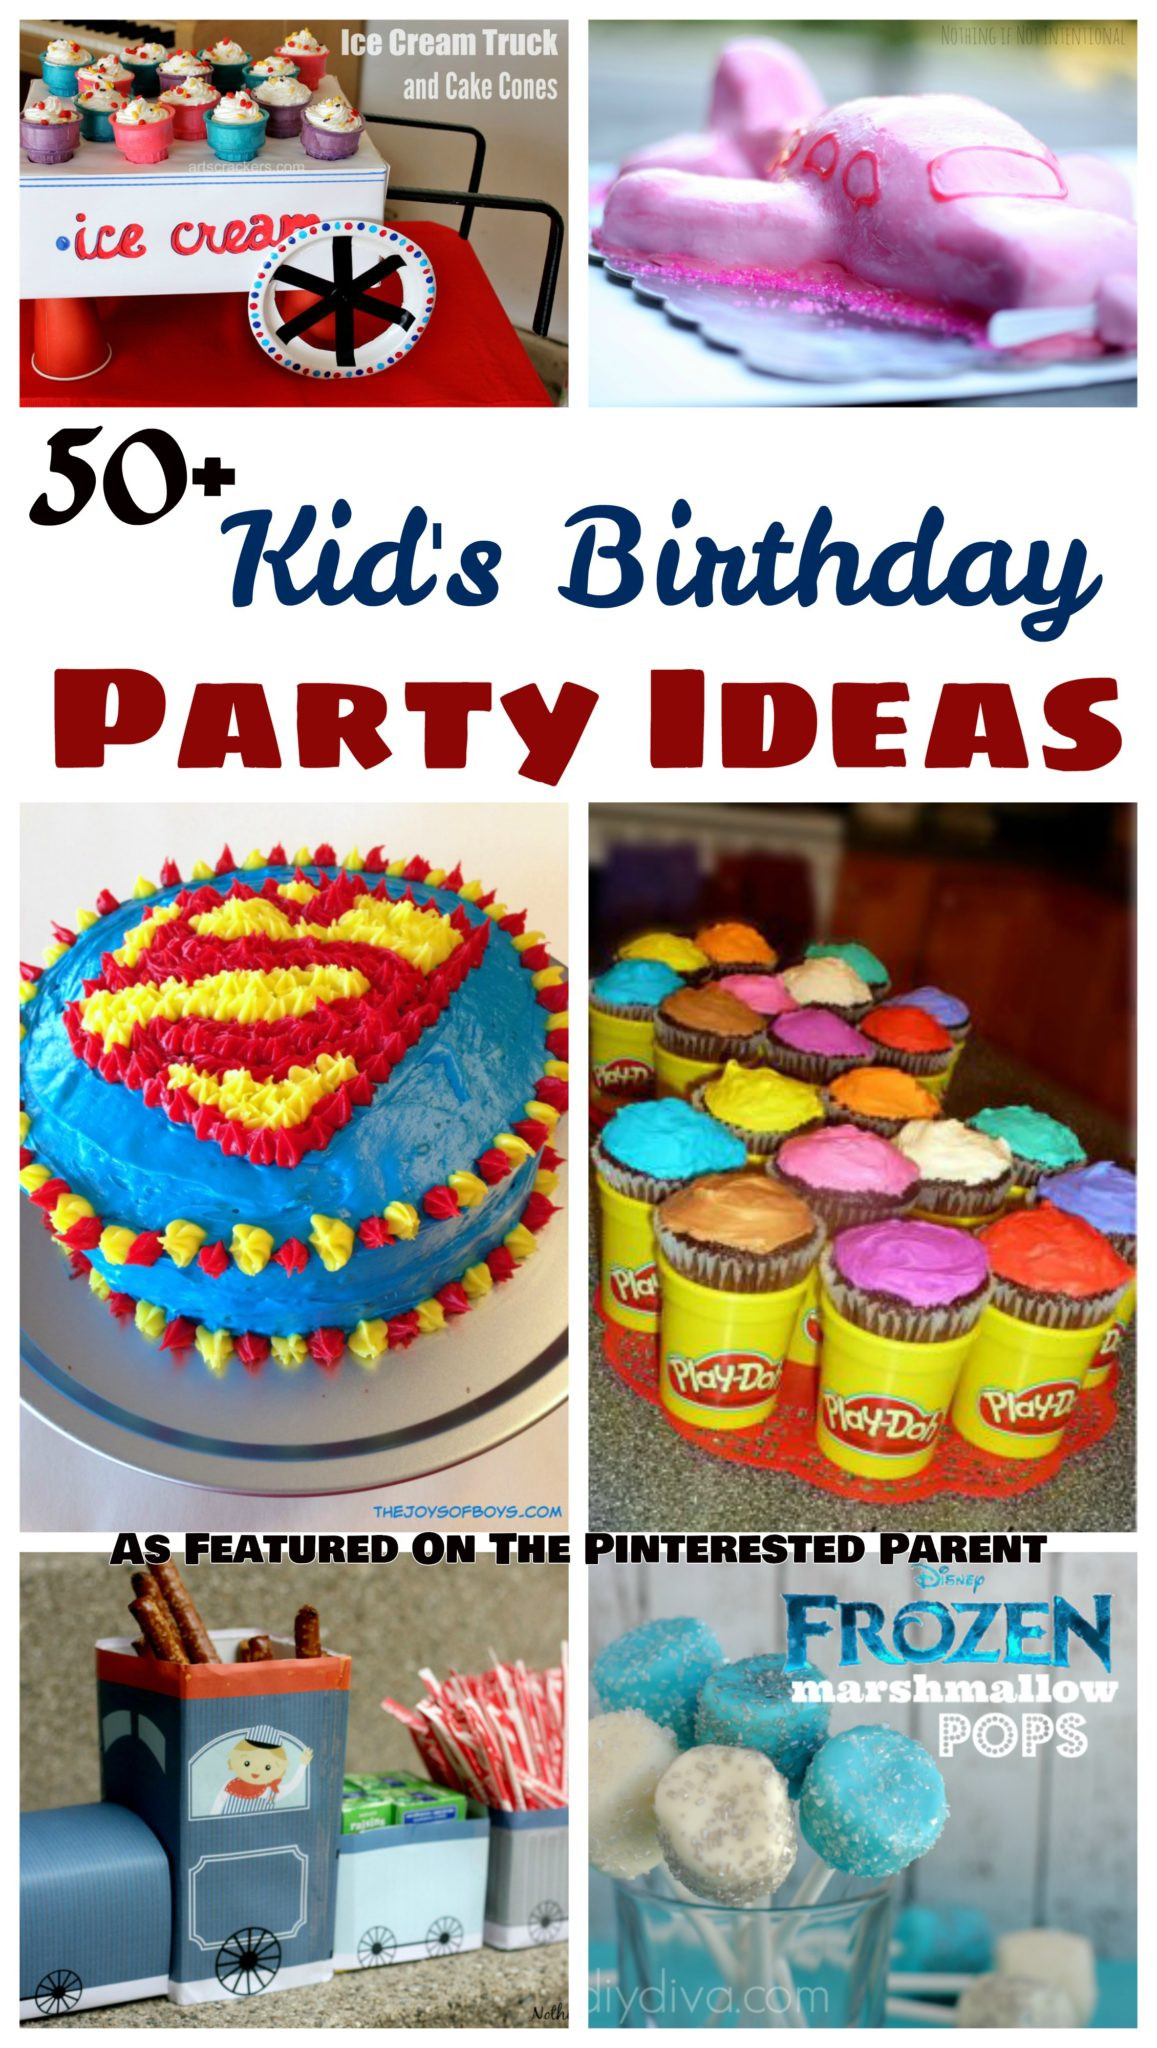 Party Theme Ideas For Kids  50 Kid s Birthday Party Ideas – The Pinterested Parent